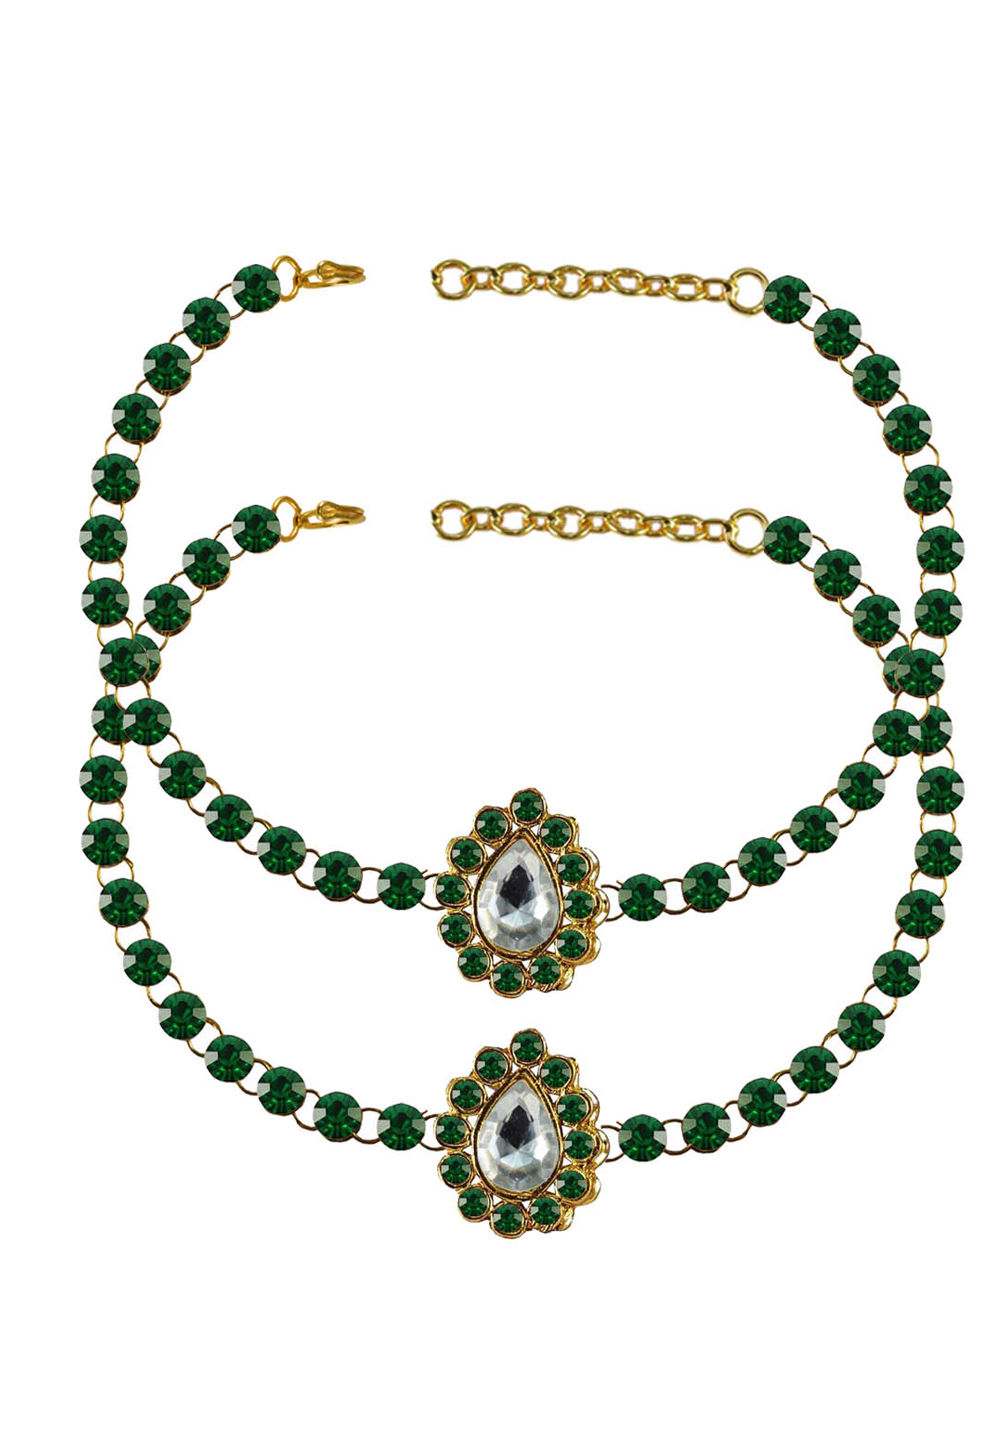 Green Brass Gold Plated Anklets 171316